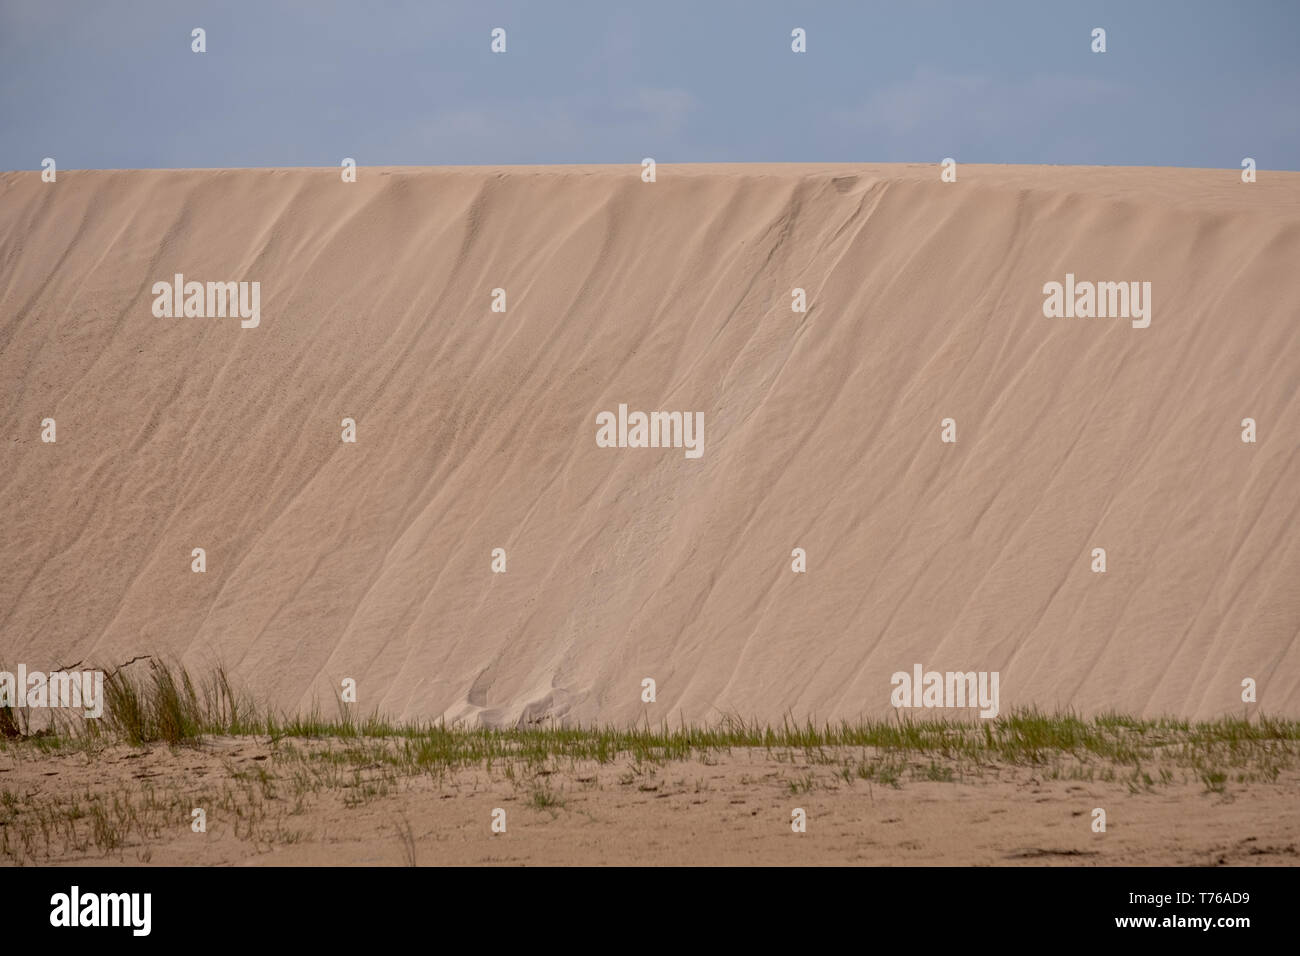 The Alexandria coastal dune fields at the Sundays River mouth. The sand dunes are near Addo / Colchester on the Sunshine Coast in South Africa. - Stock Image